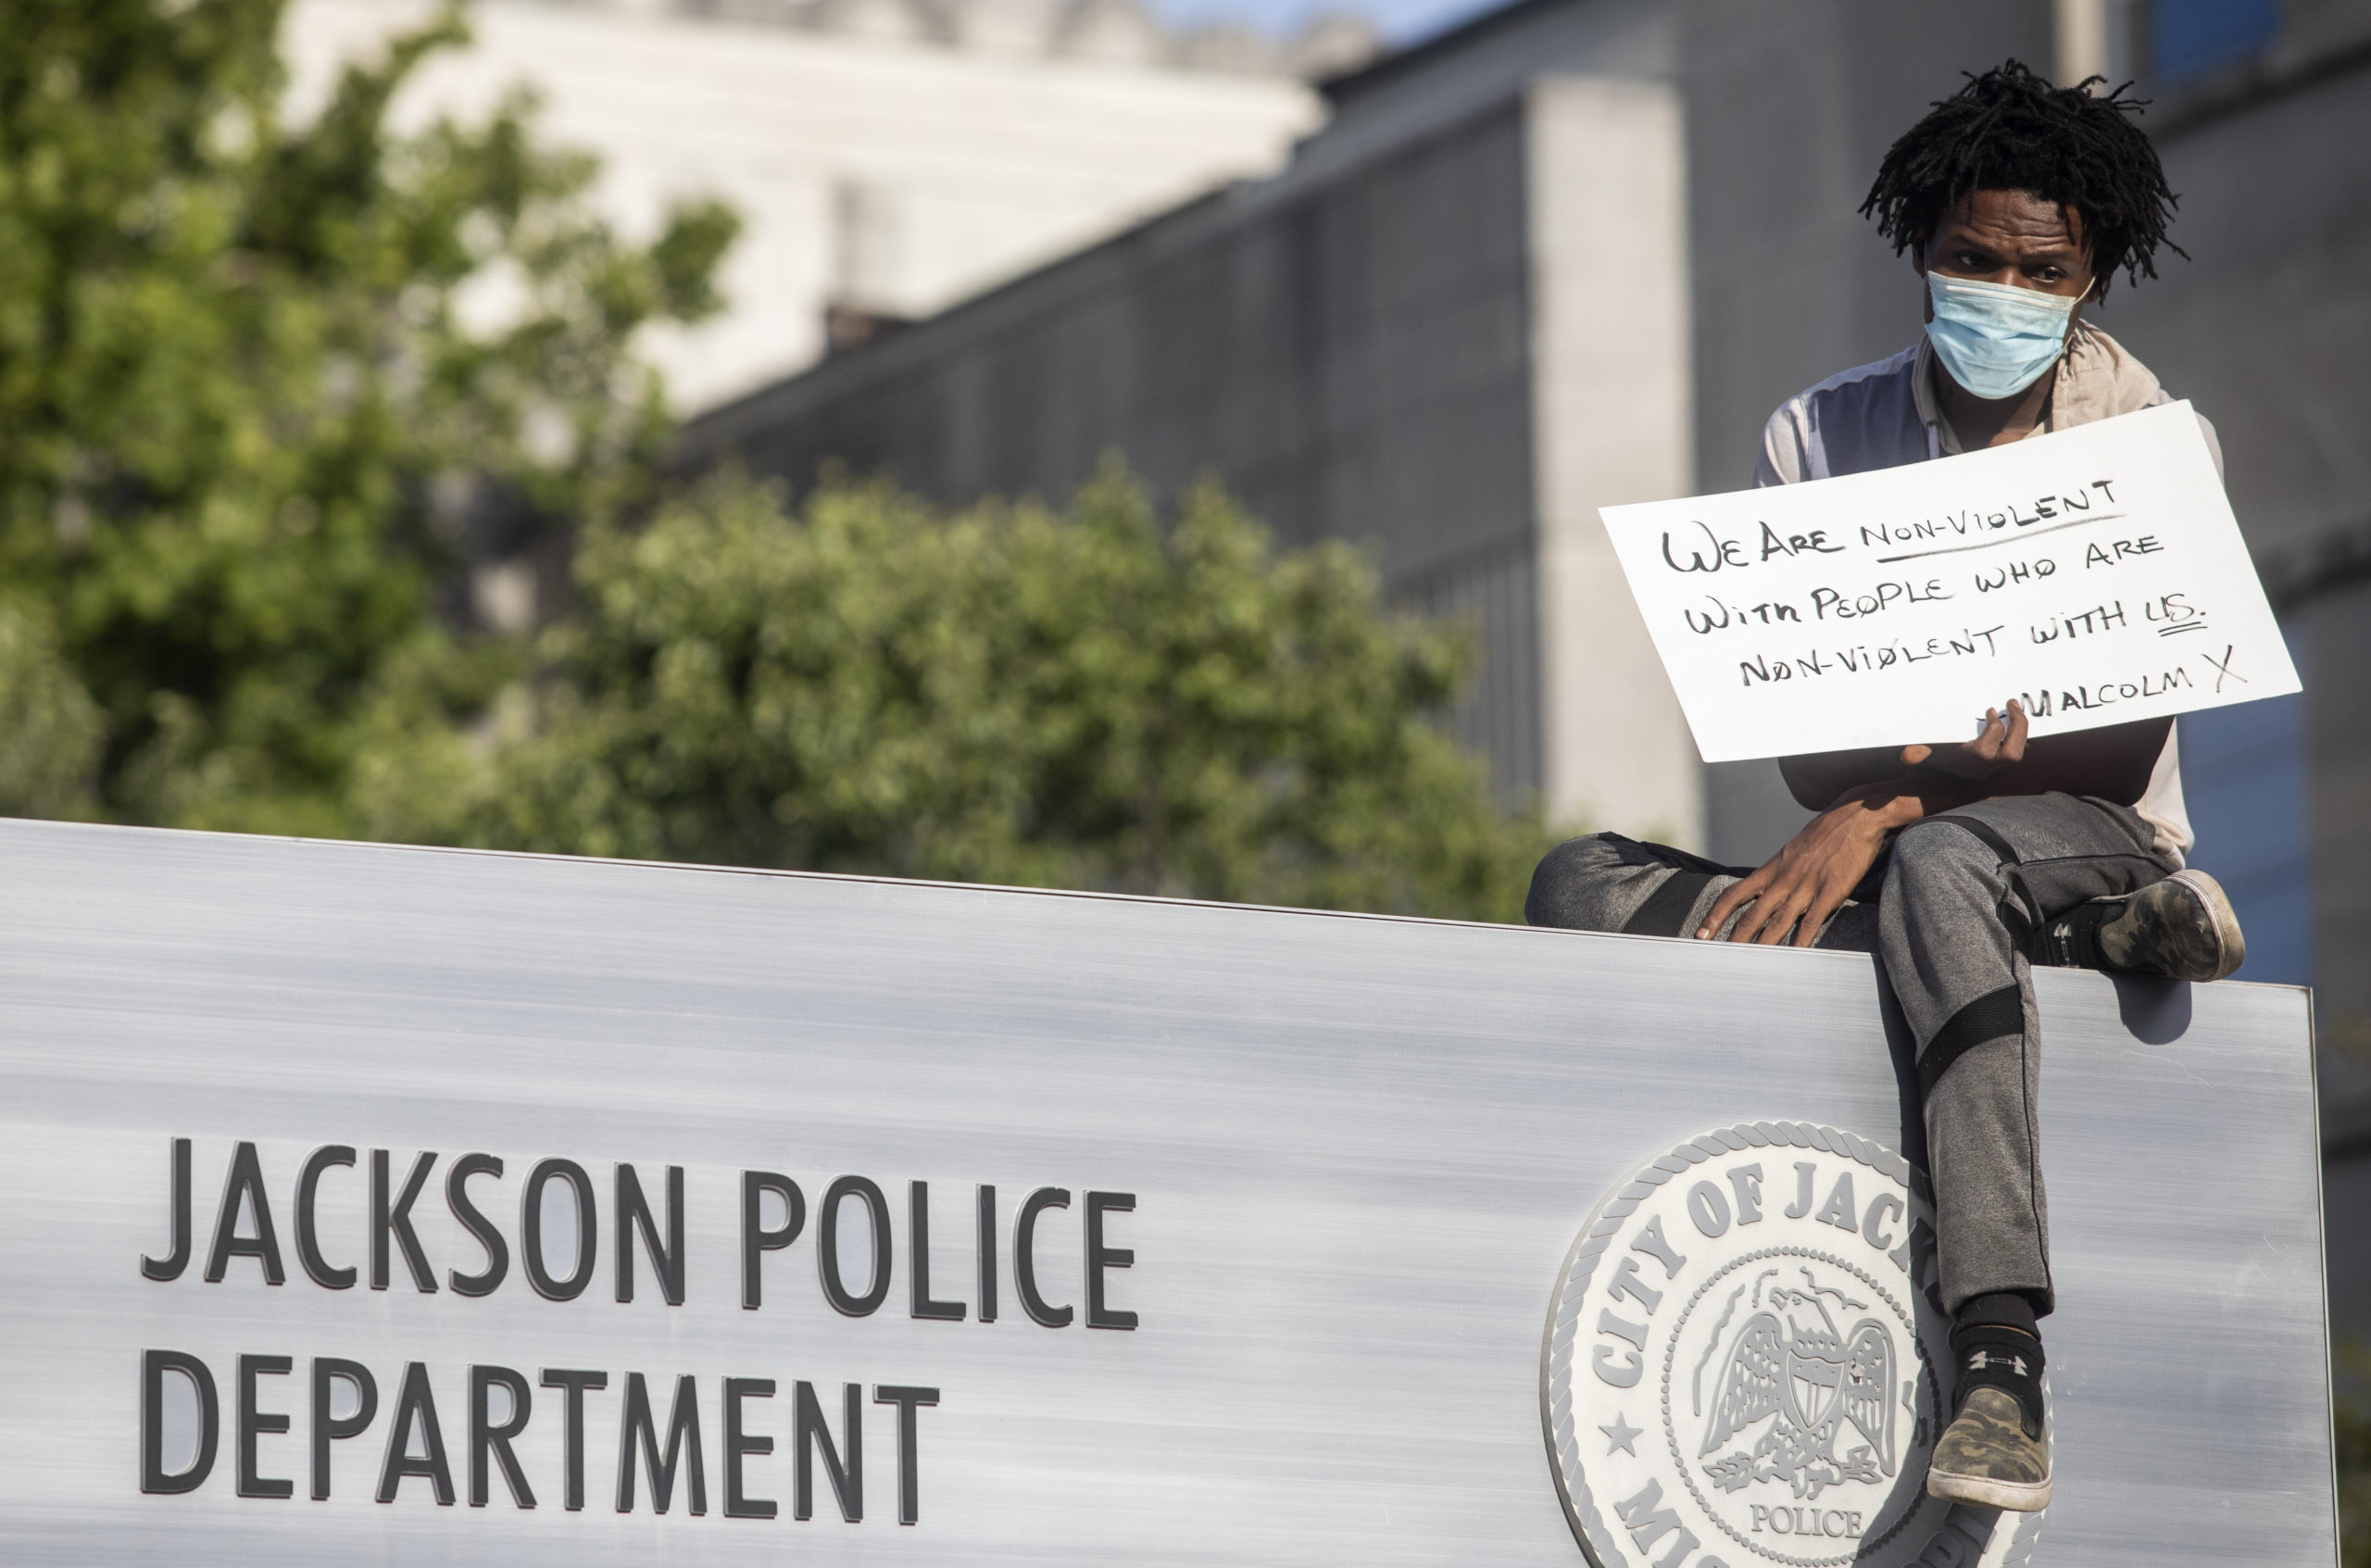 Jackson Protest: 'We are tired of black lives being taken by police officers'